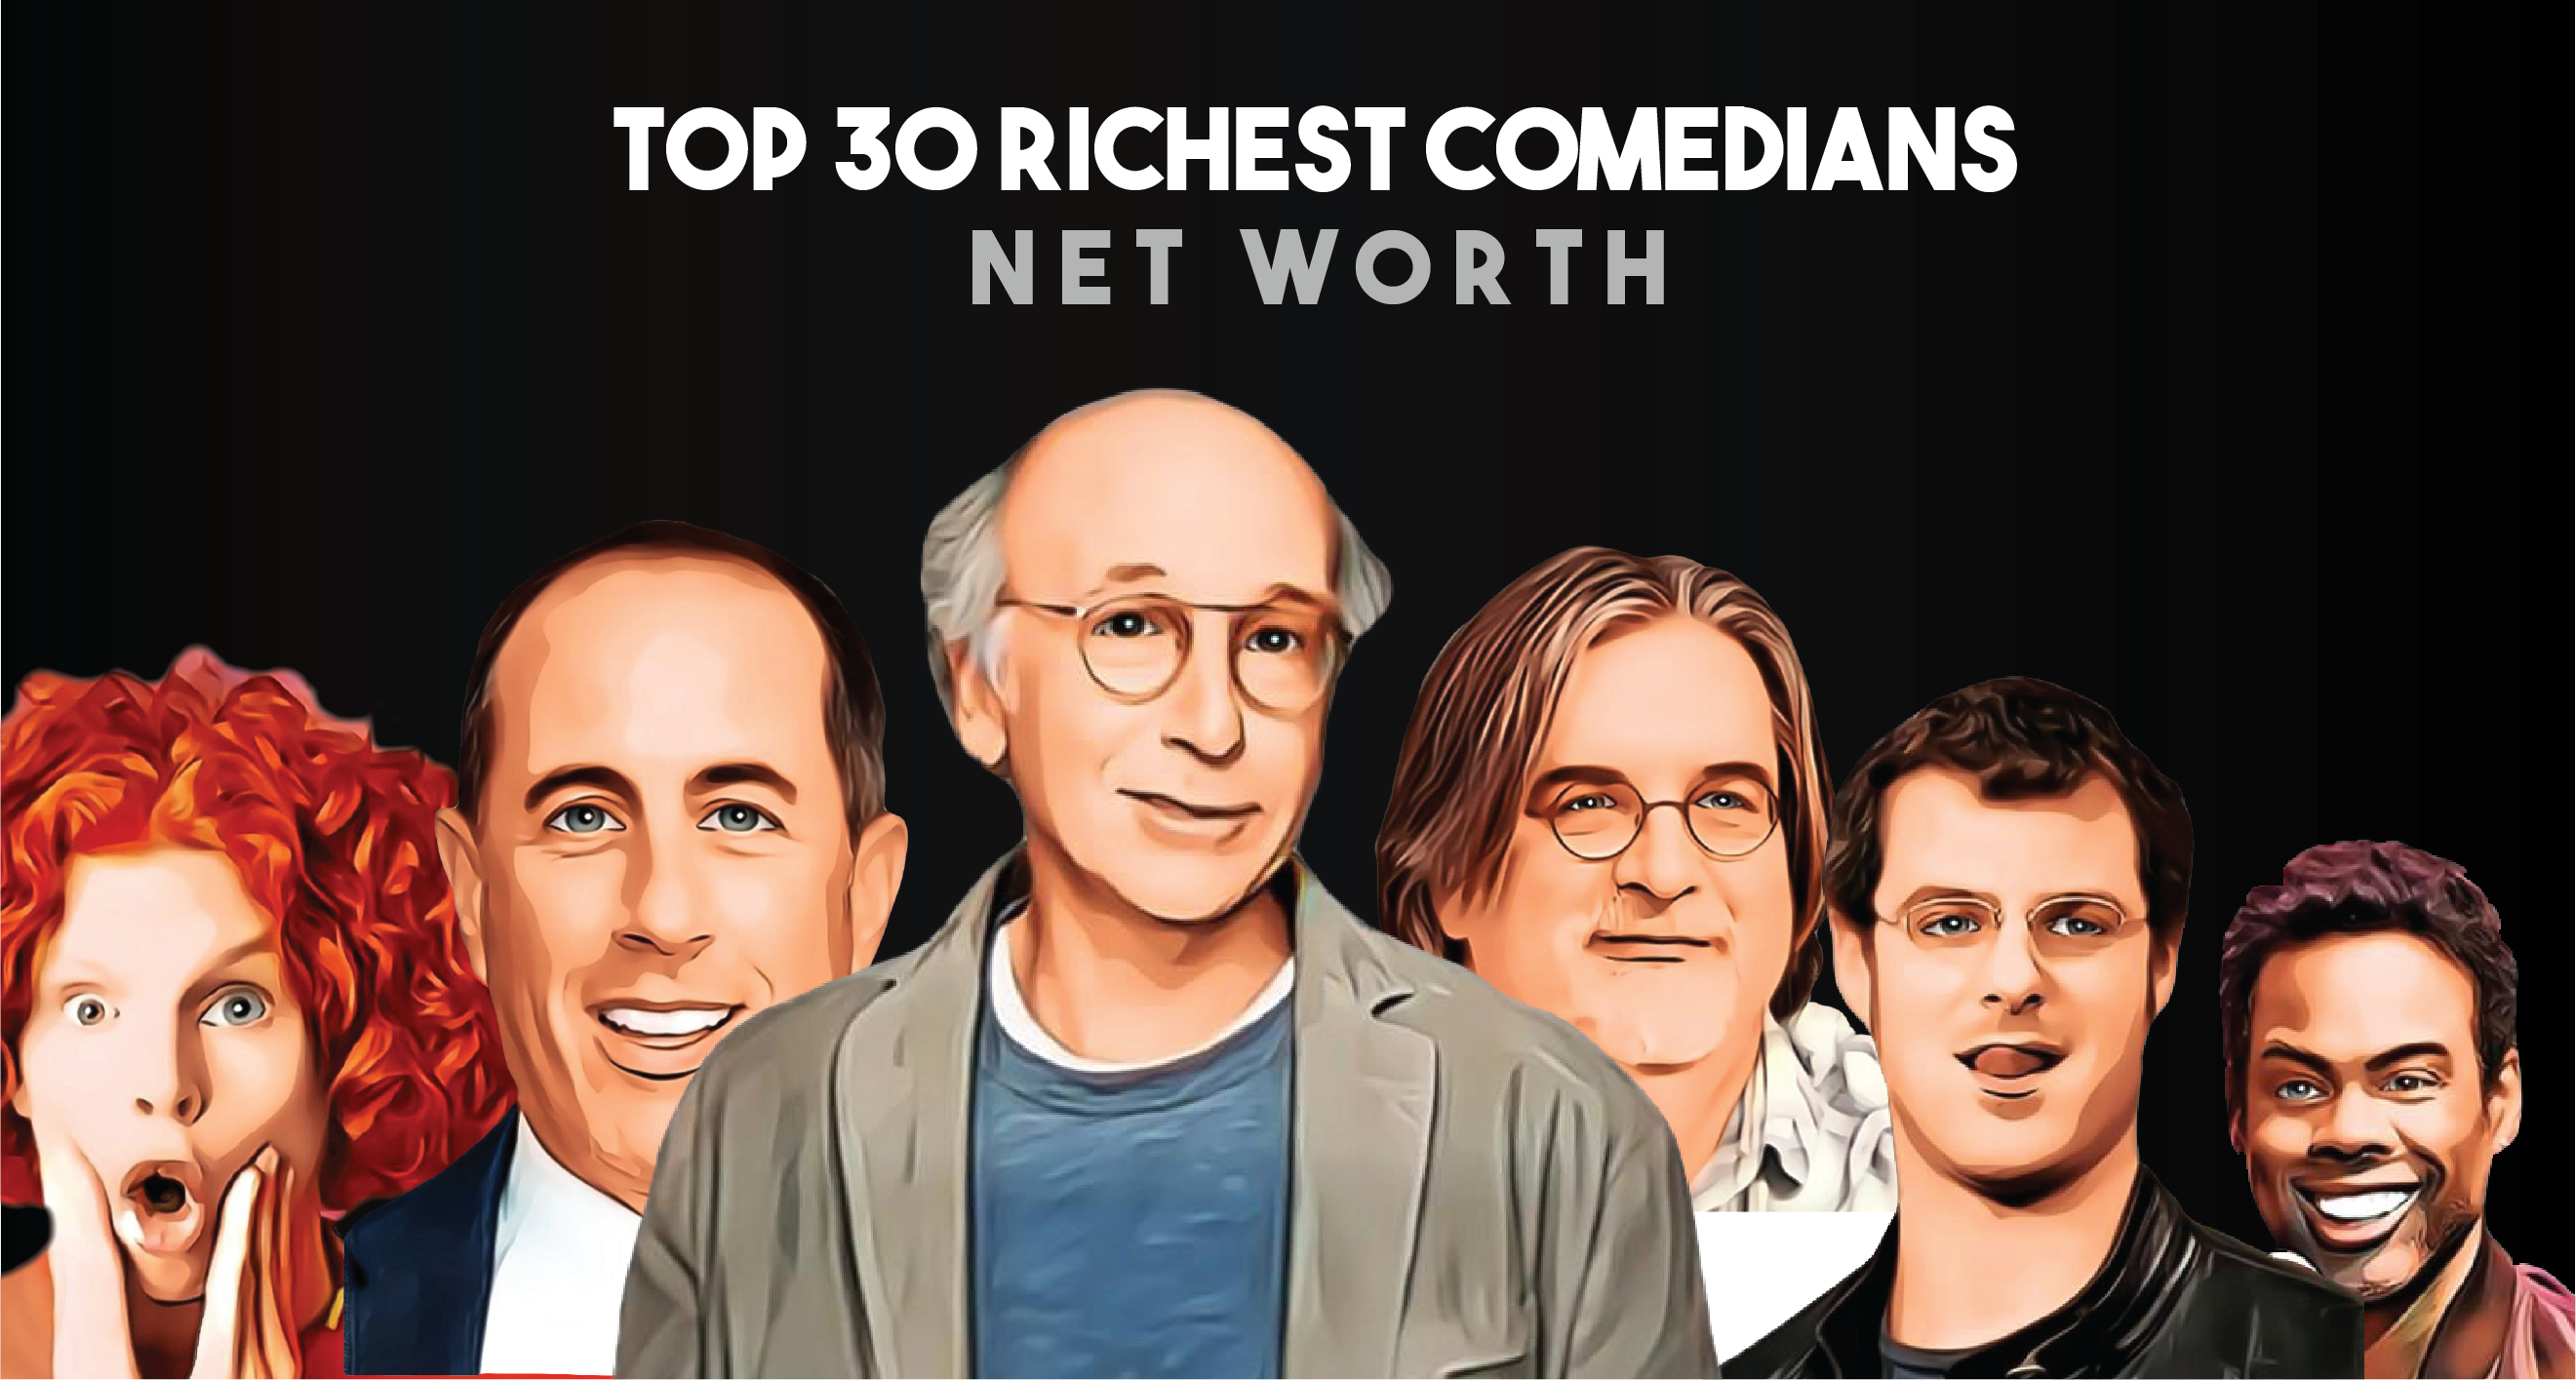 Top 30 Richest Comedians